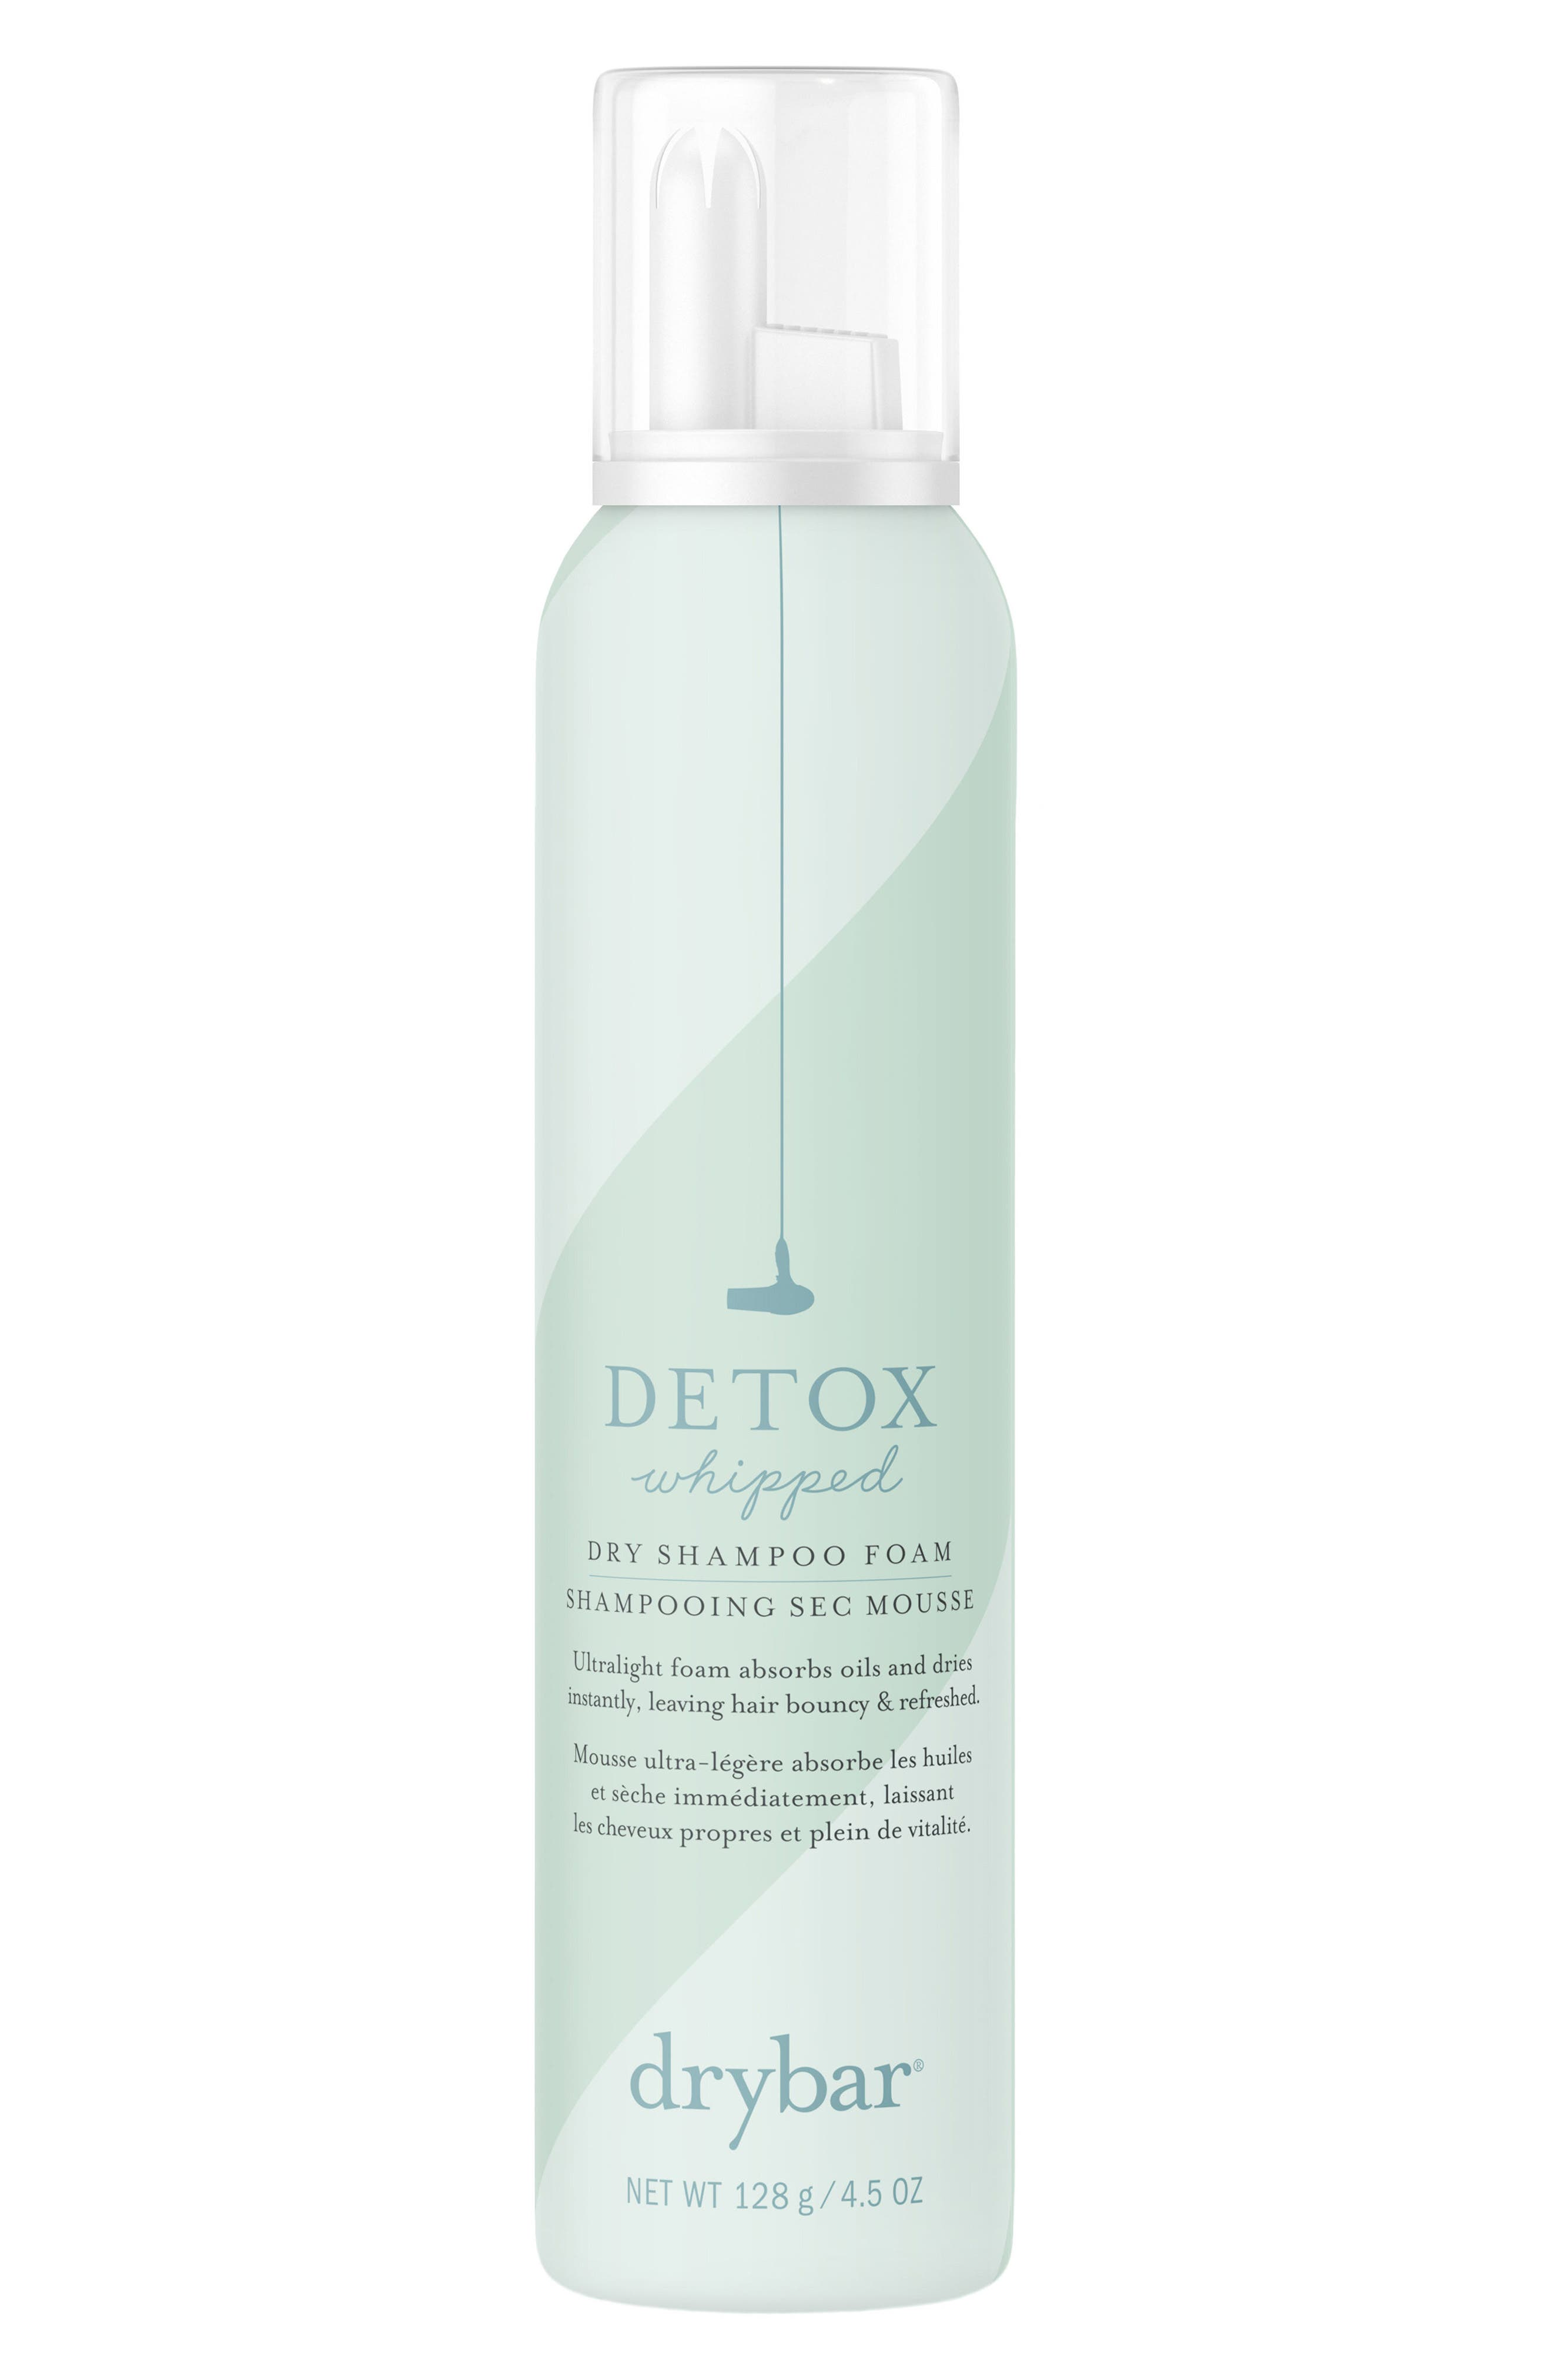 DRYBAR,                             Detox Whipped Dry Shampoo Foam,                             Main thumbnail 1, color,                             NO COLOR